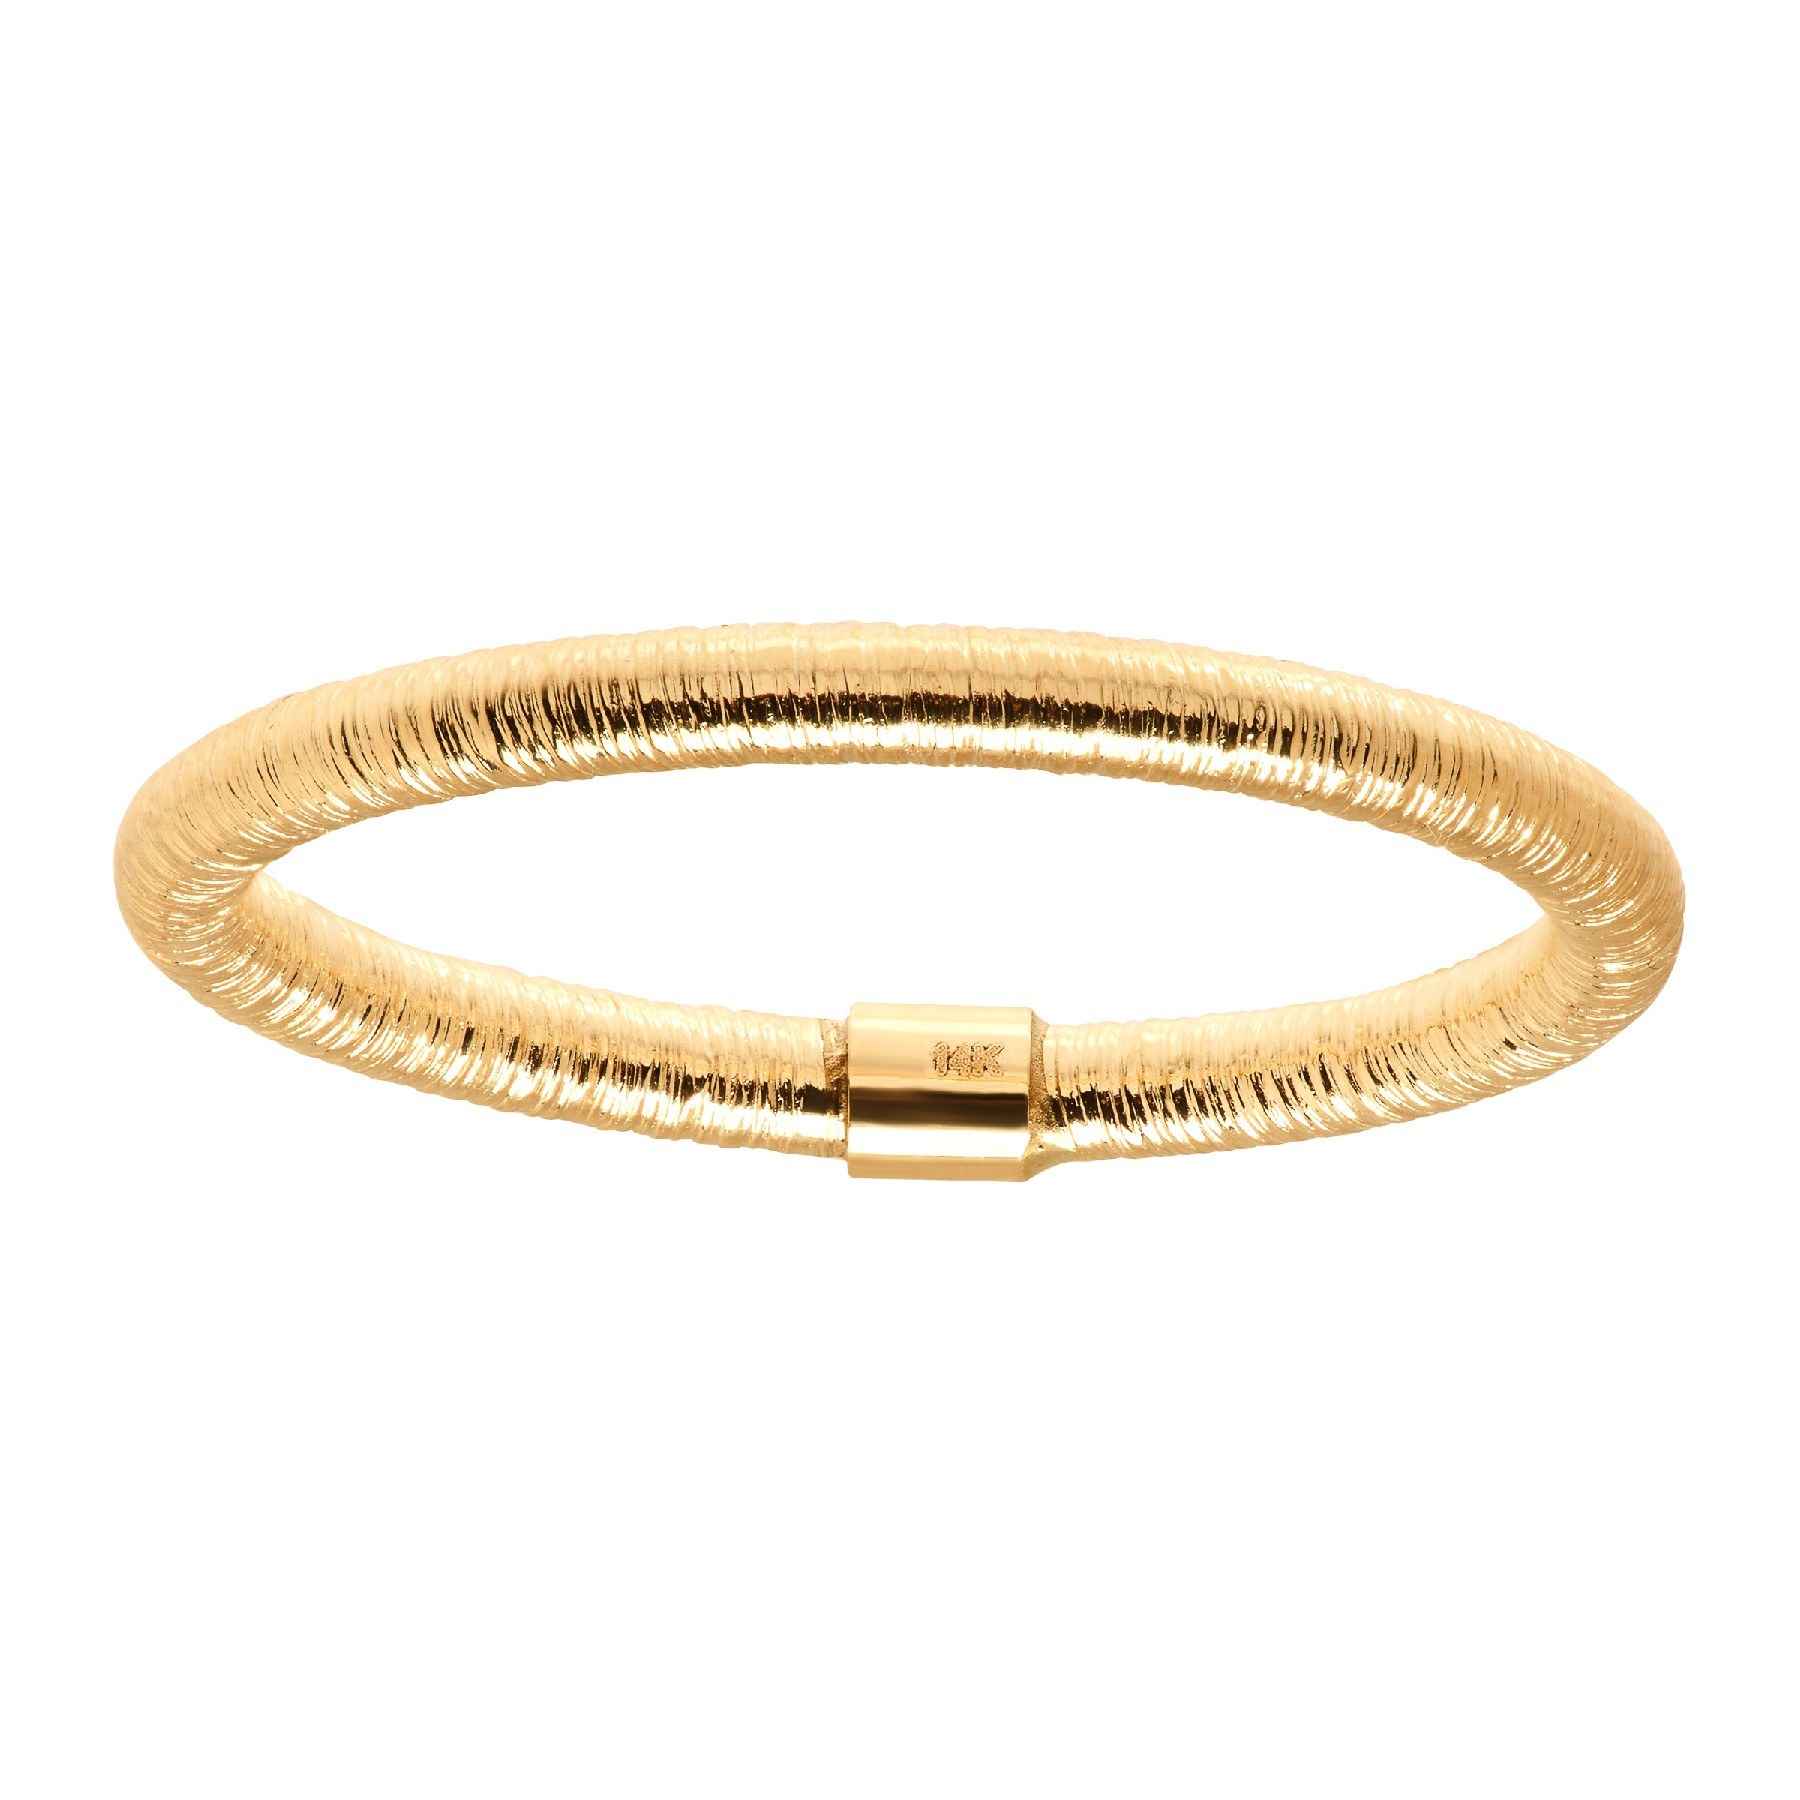 ETERNITY GOLD TEXTURED BAND RING